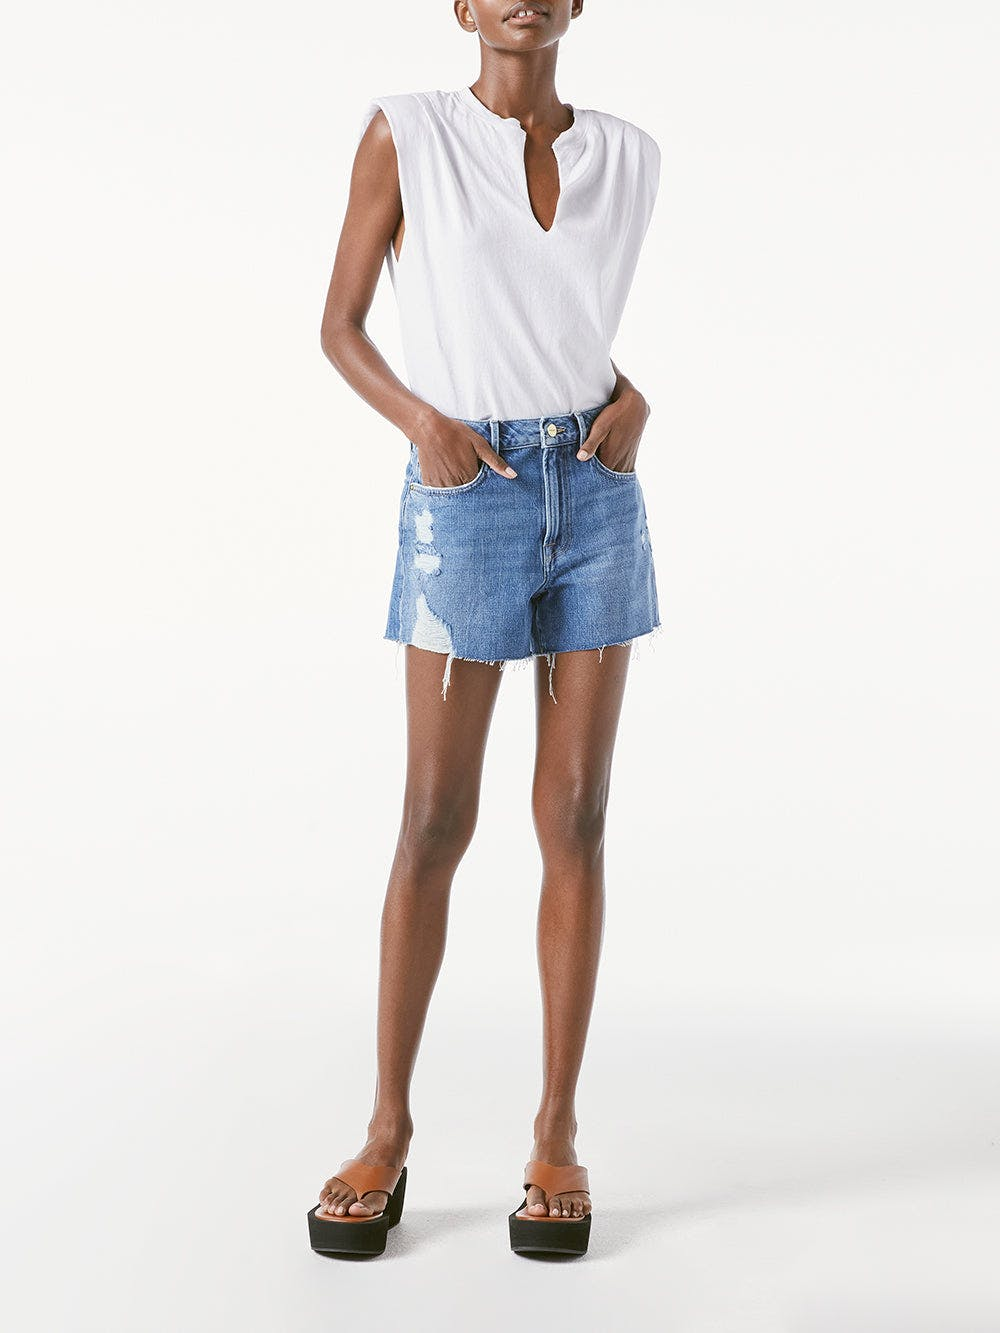 shorts front full body view 2